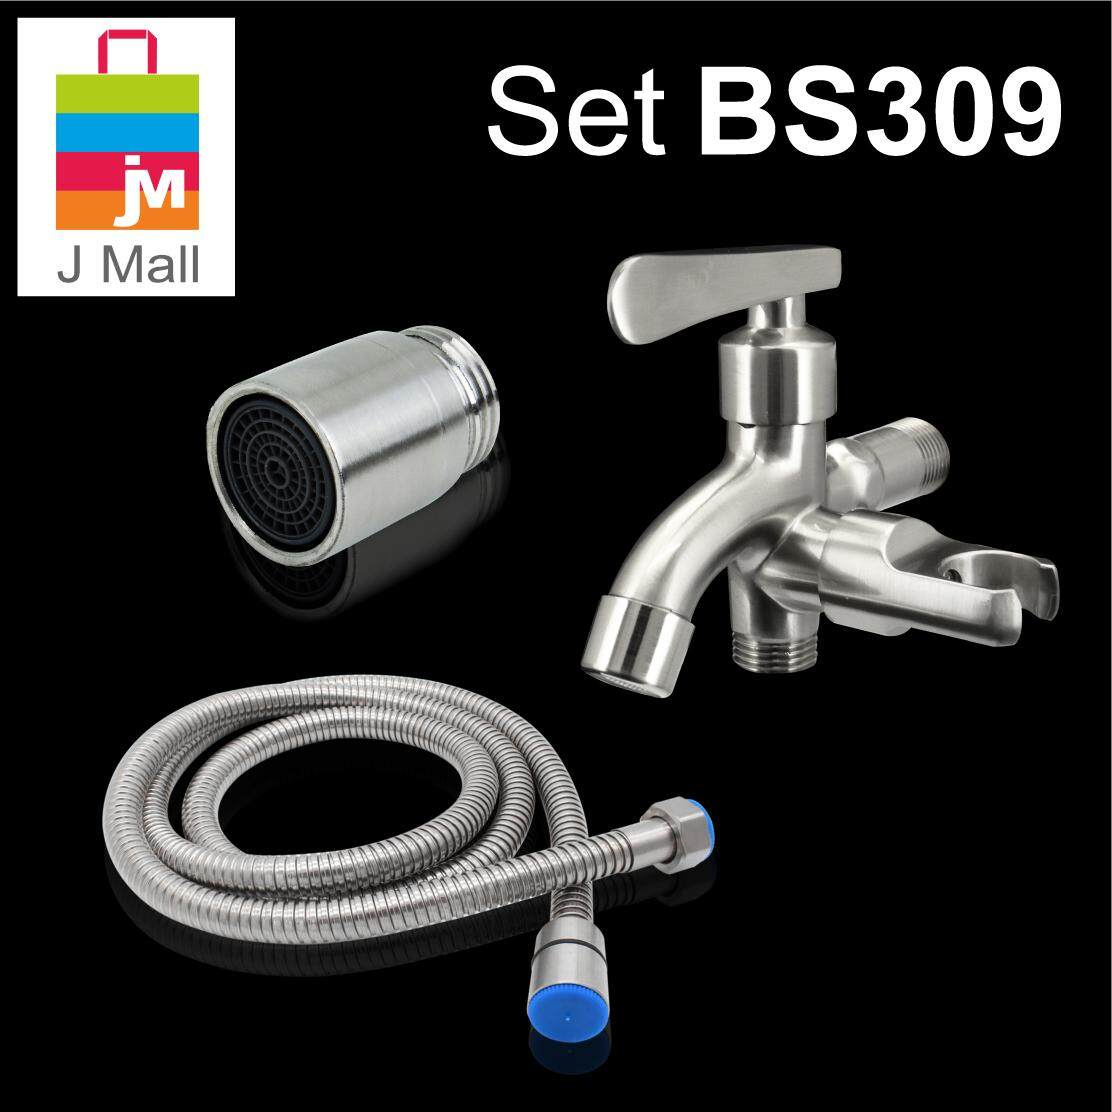 MCPRO SATIN FINISH TWO WAY TAP BATHROOM TOILET WALL FAUCET &  WATER BUBBLER HEAD HOSE SET (BS309)